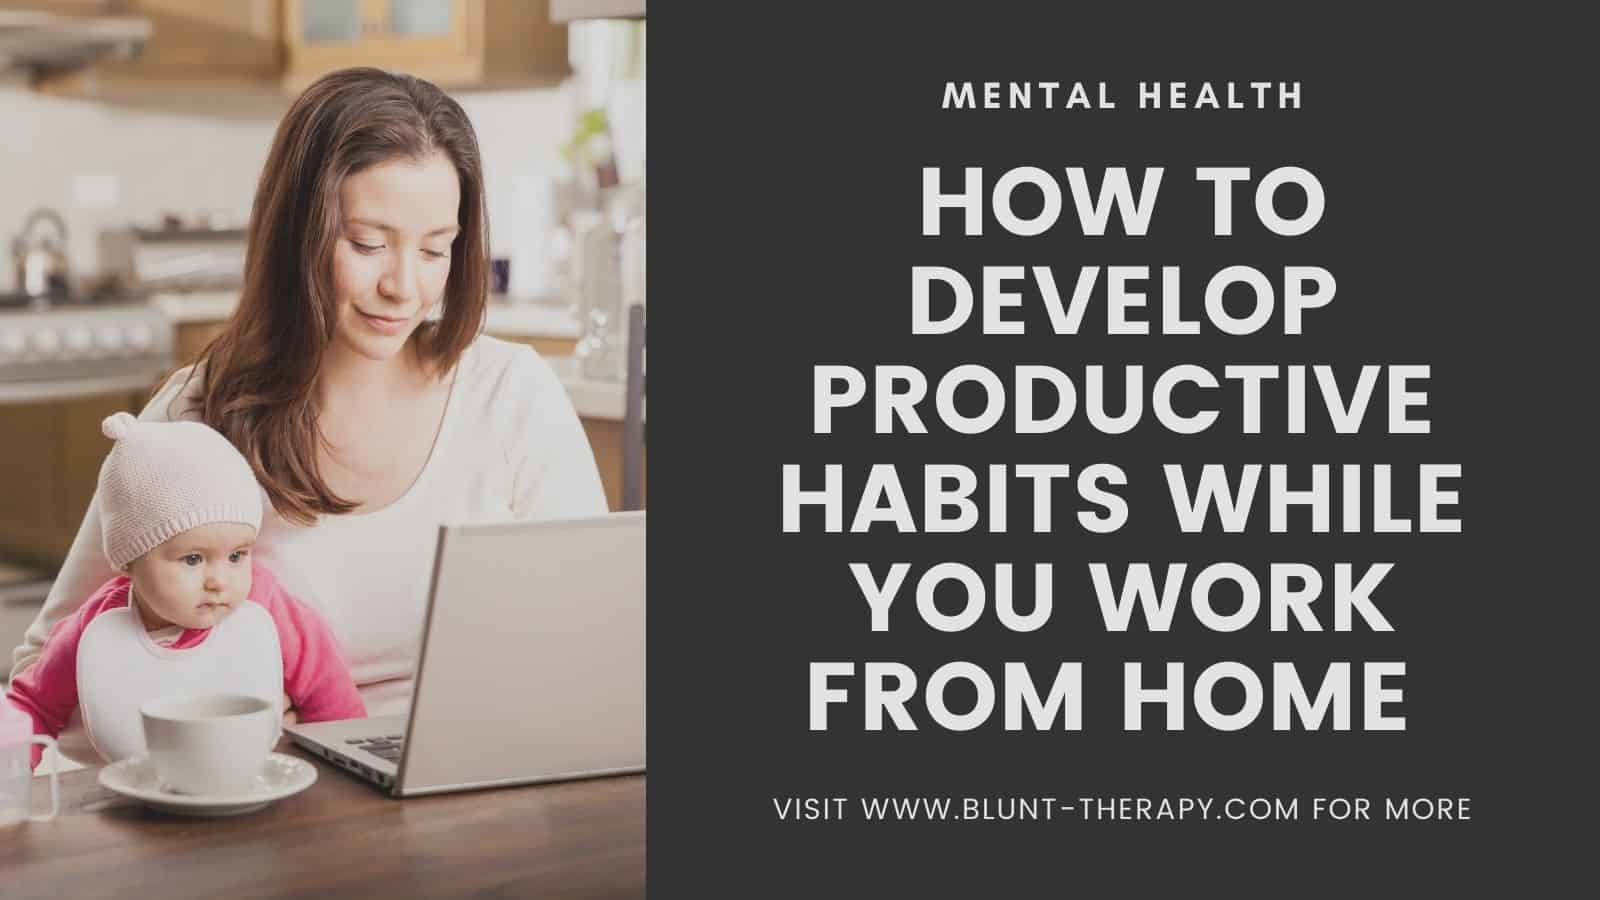 How To Develop Productive Habits While You Work From Home During The Pandemic